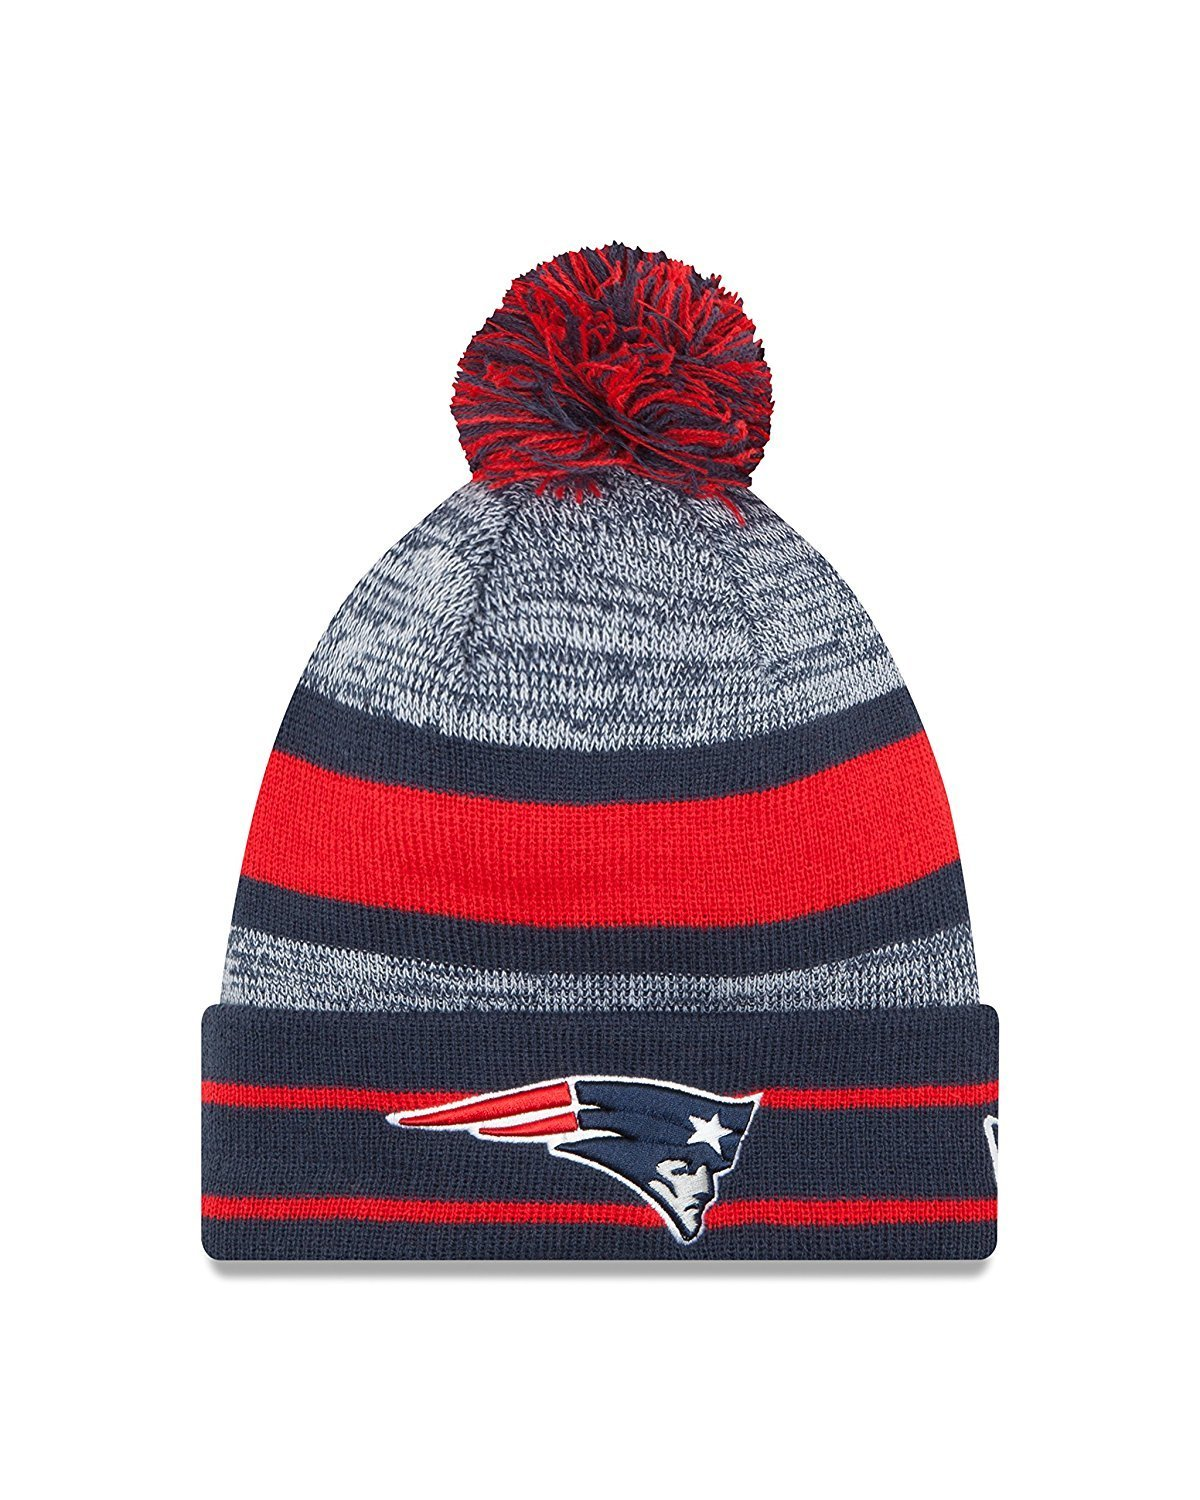 2362b738541 Get Quotations · New Era NFL New England Patriots On Field Blue Sport Knit  Beanie Hat With Pom